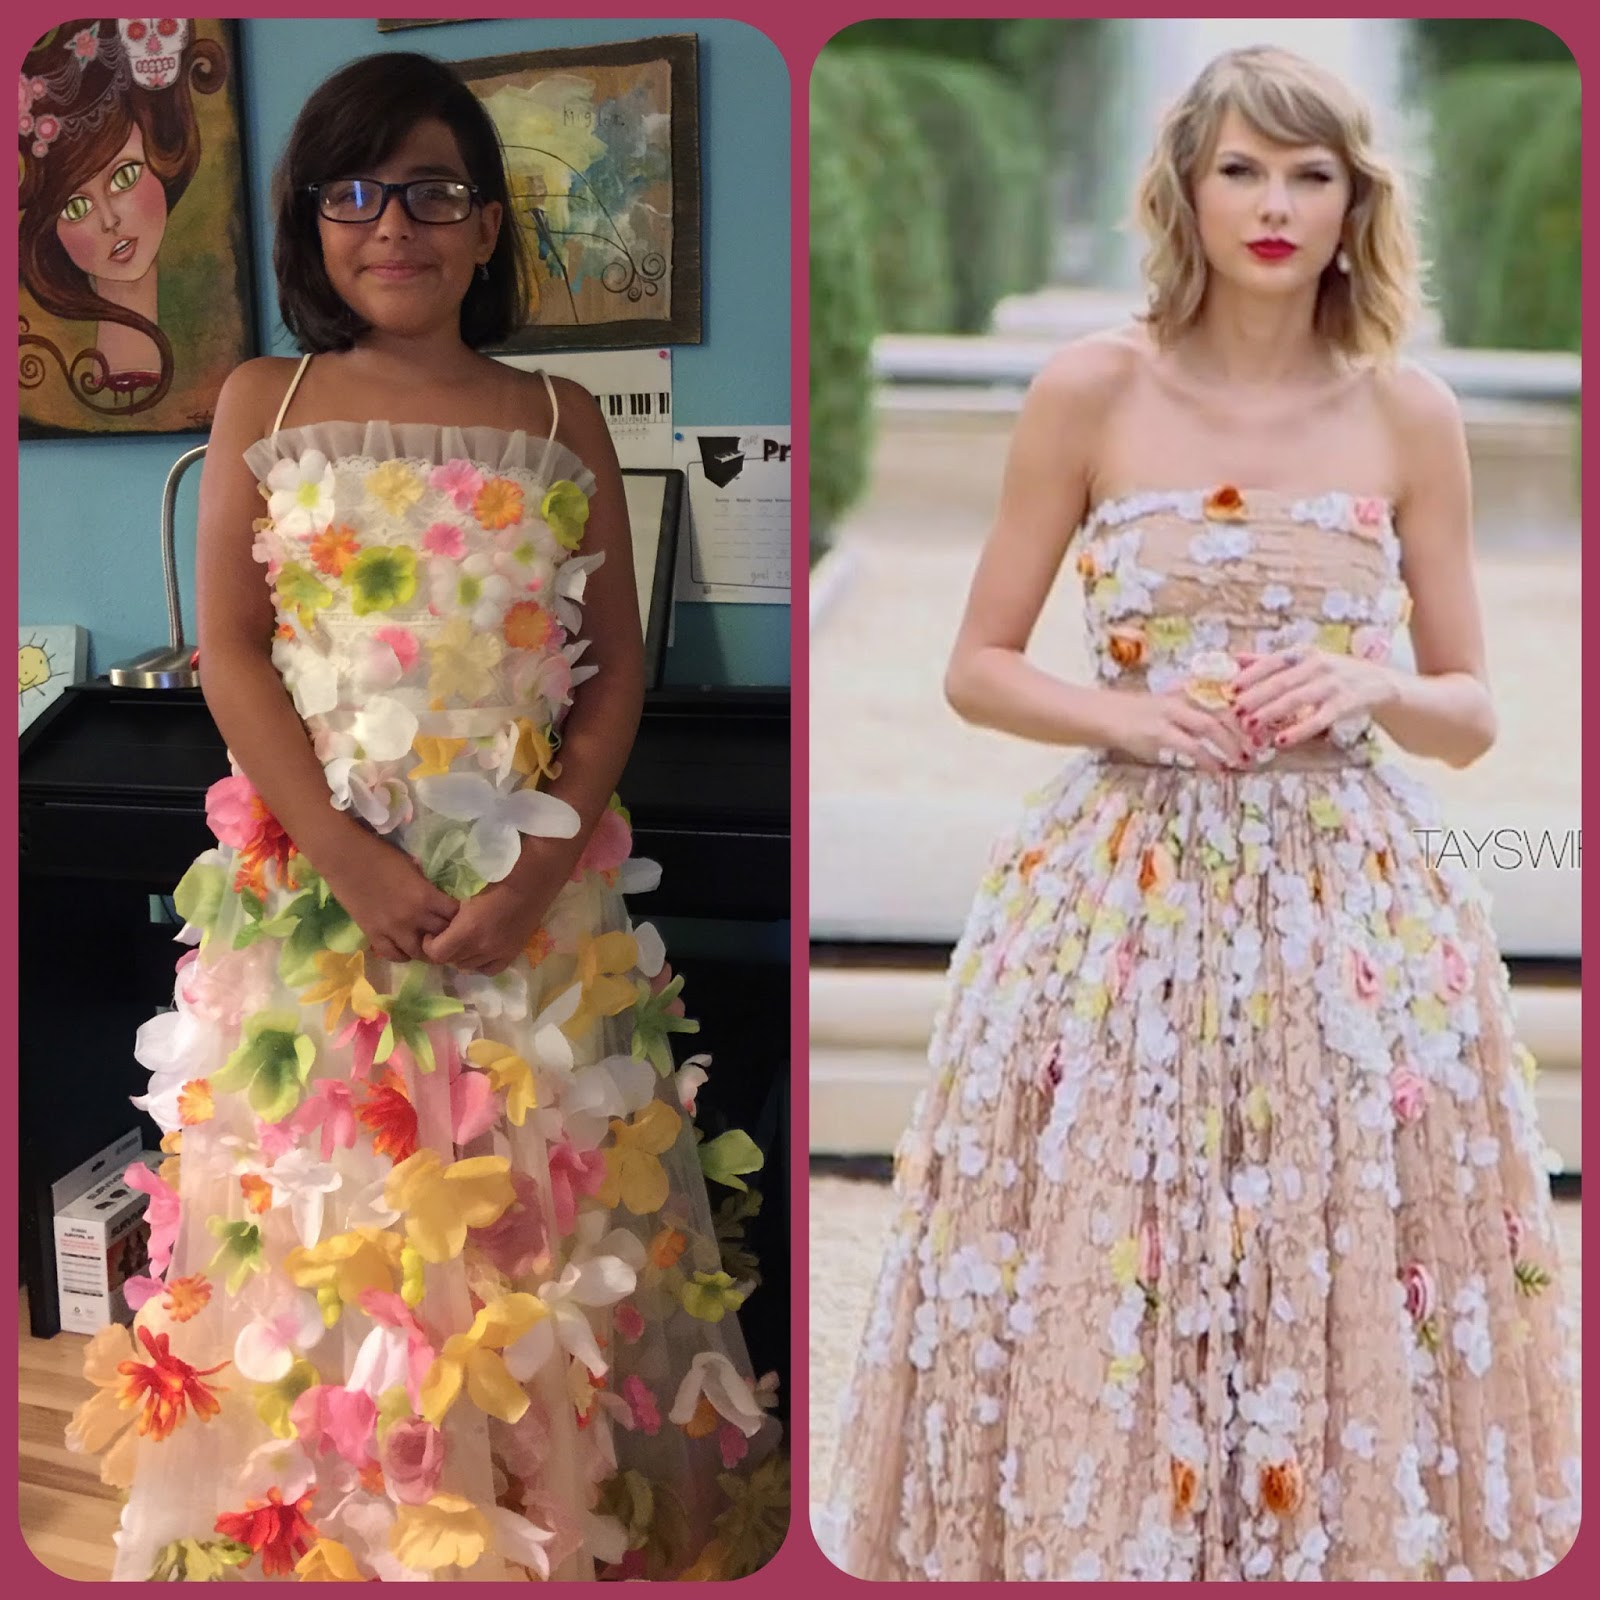 "edenfolwell: Taylor Swift ""Blank Space"" Video dress"